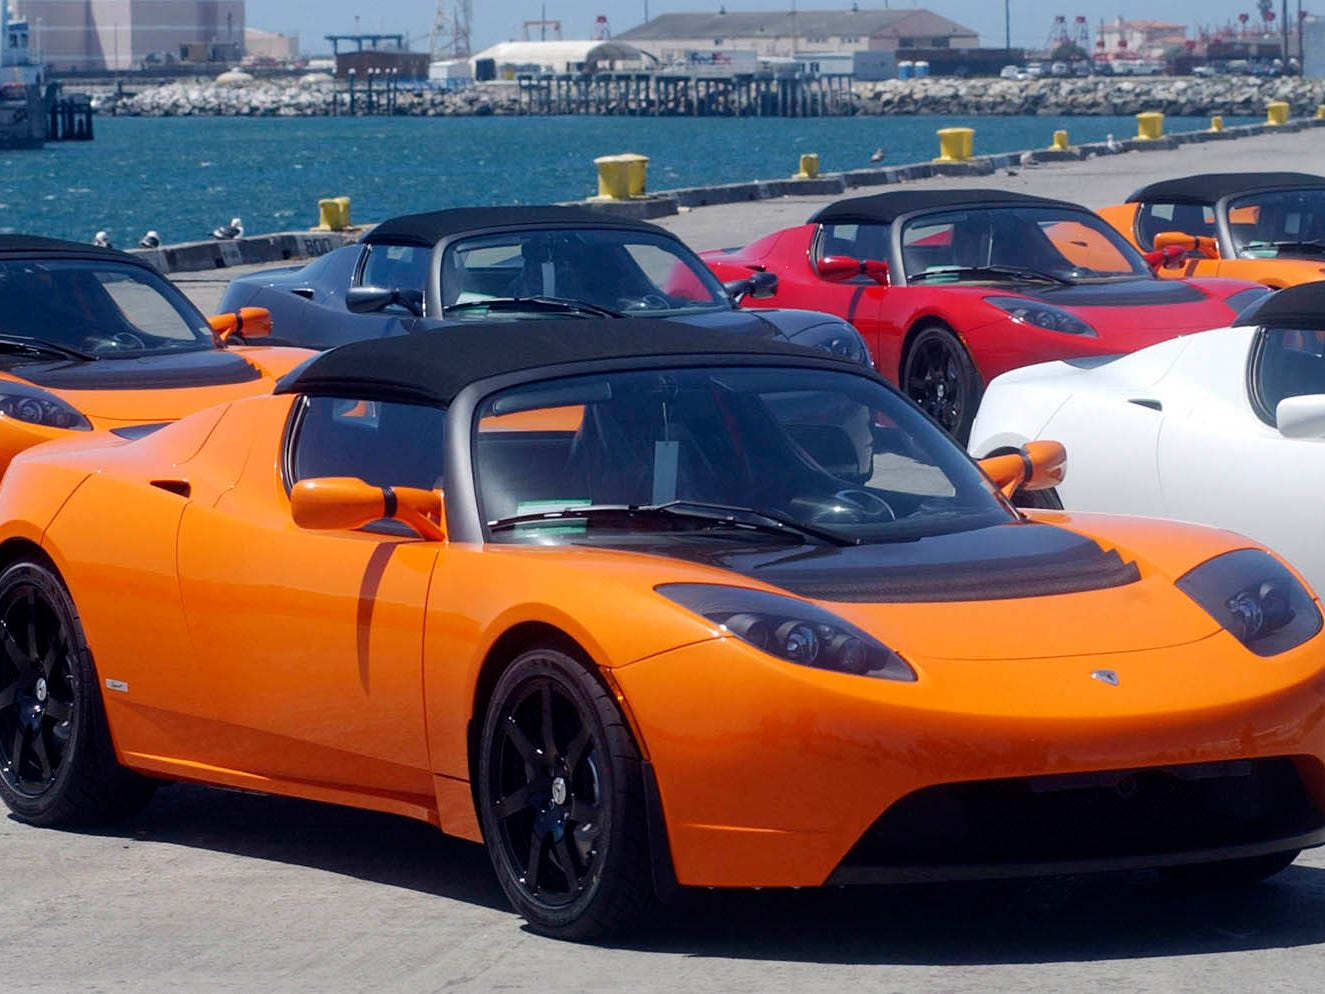 Some of twelve Tesla Roadsters bound for Japan are seen at a dock in Port Hueneme, Calif. April 21, 2010.